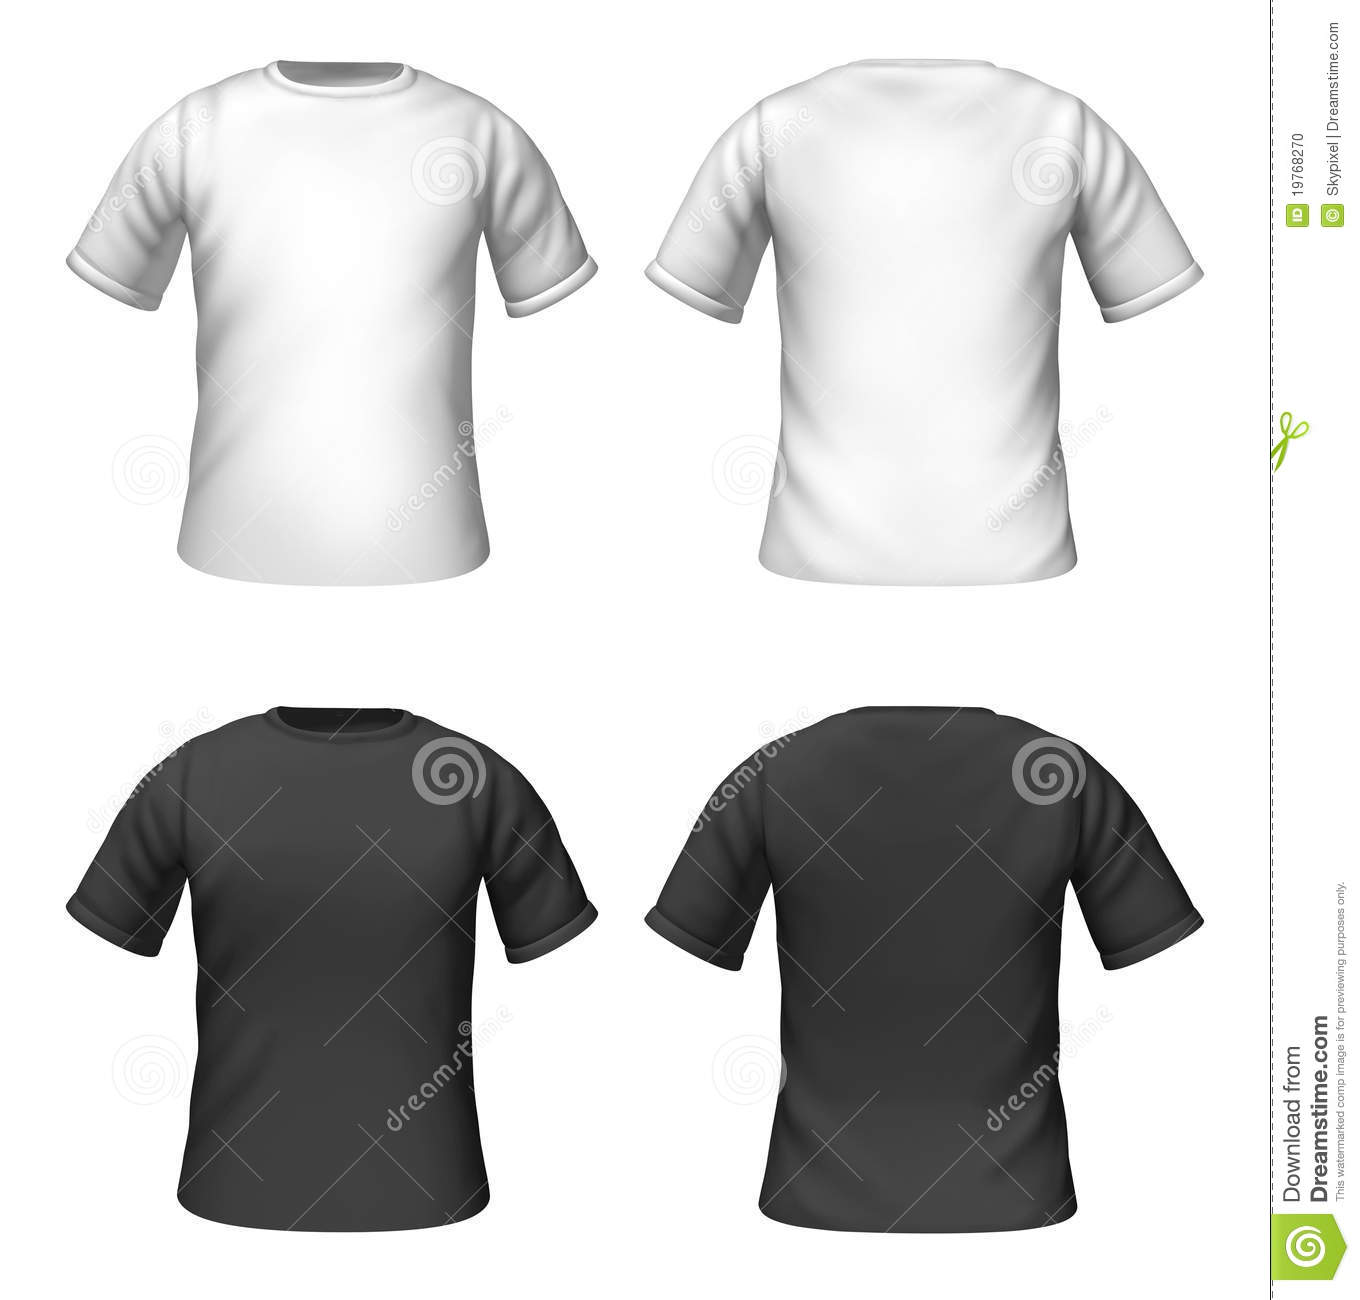 Blank black t shirt front and back - Blank T Shirts Template With Black And White Color Stock Photo